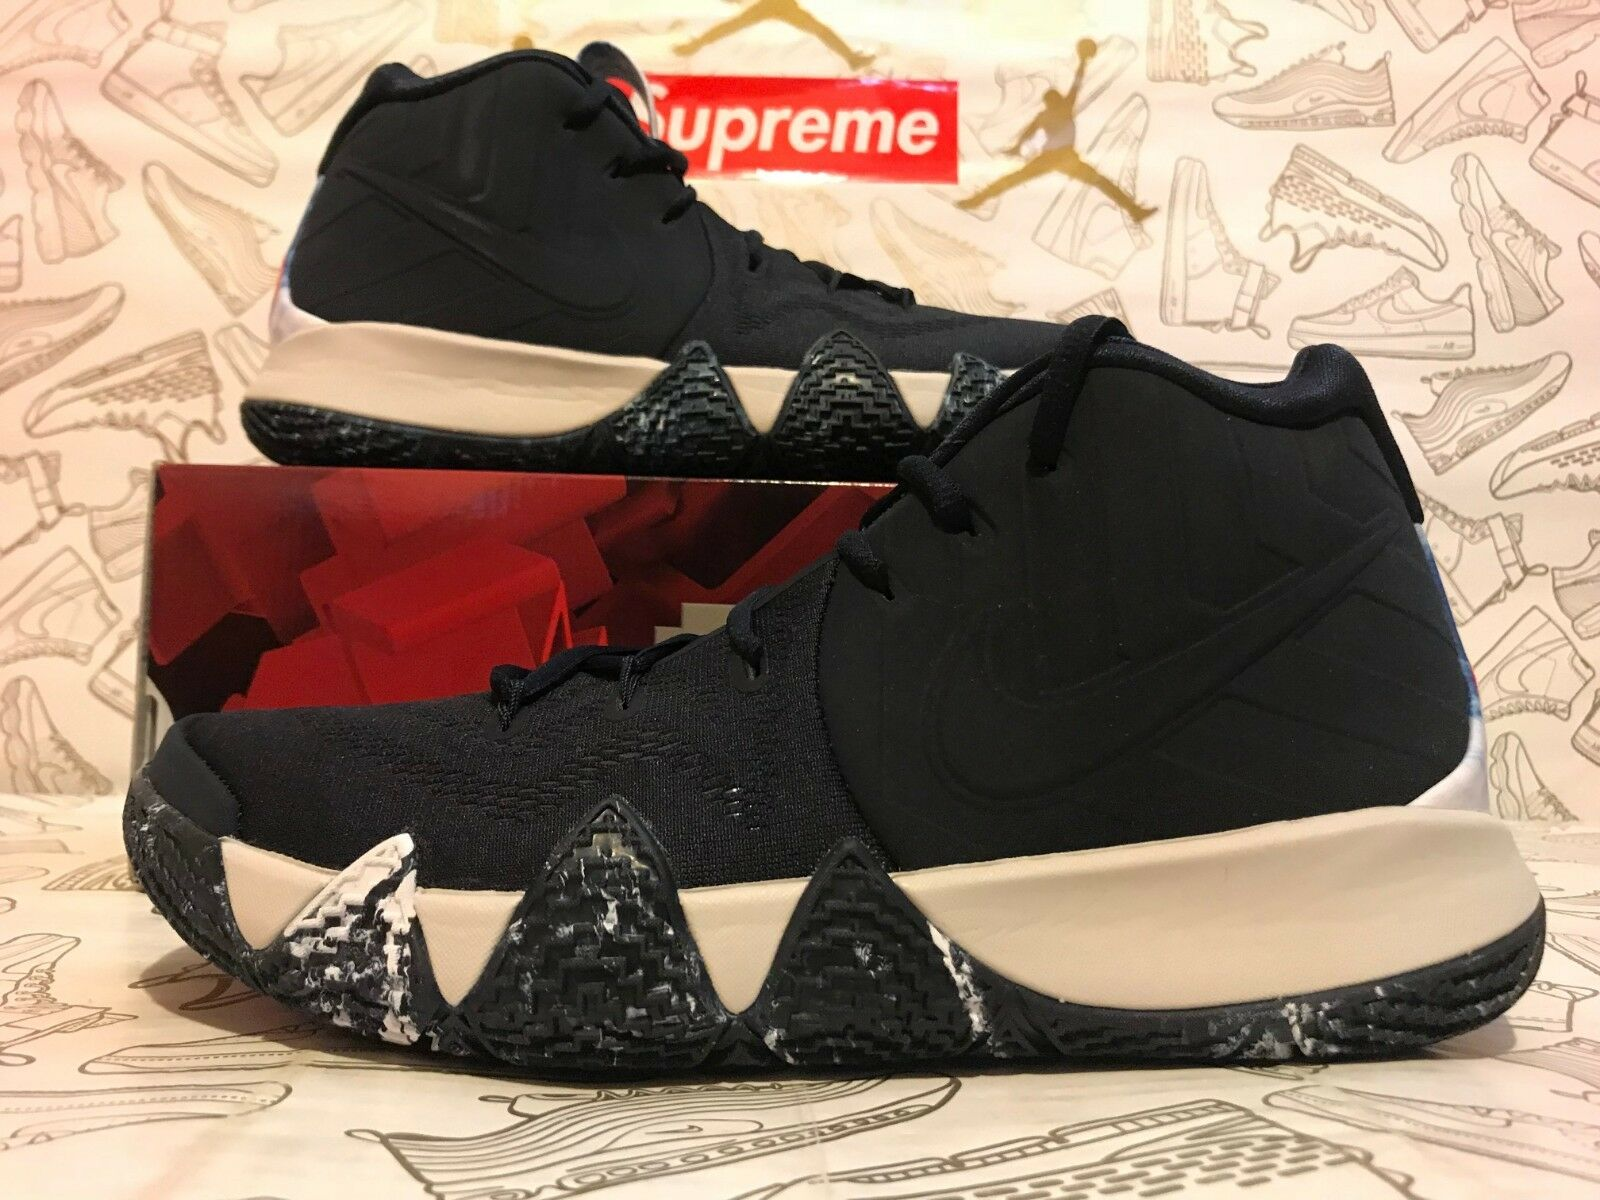 NEW NIKE AIR KYRIE 4 N7 AT0320 400 Dark Obsidian Black White bluee Duke SIZE 10.5